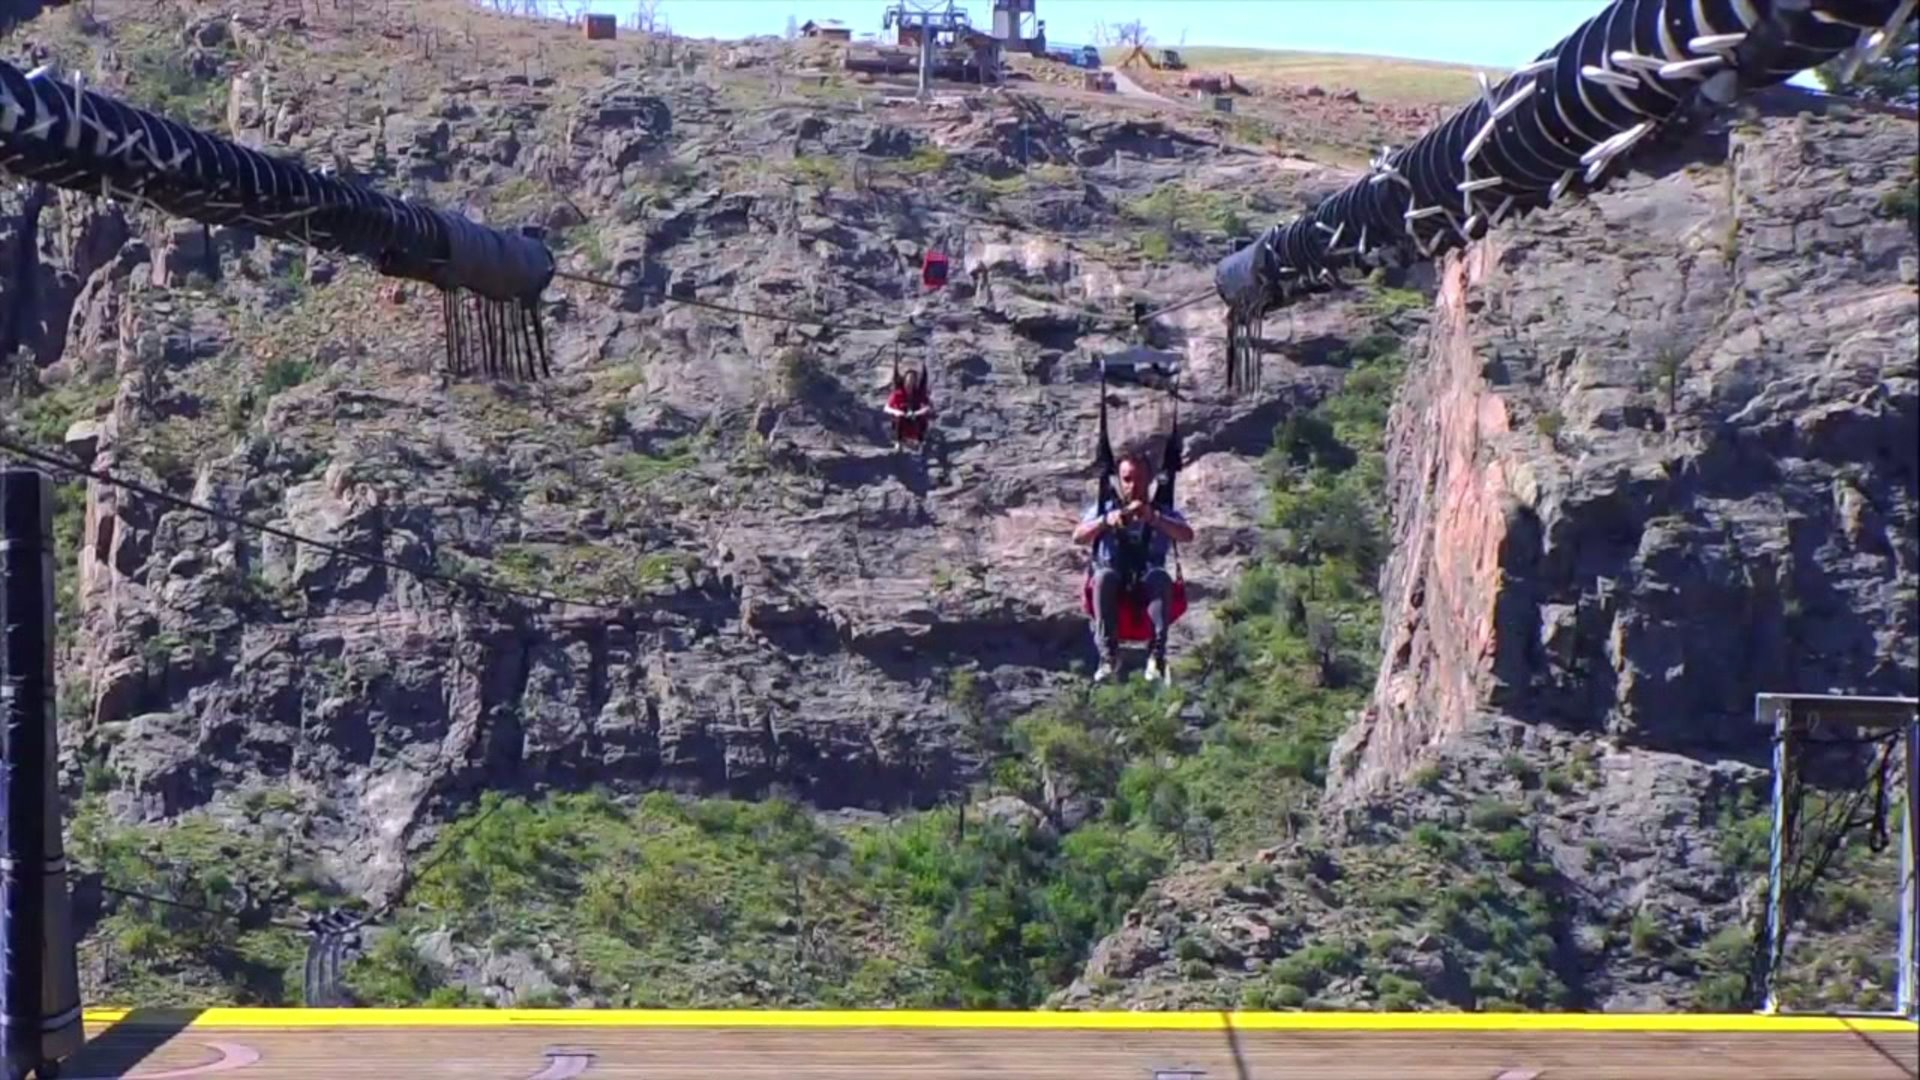 The Royal Gorge zip line